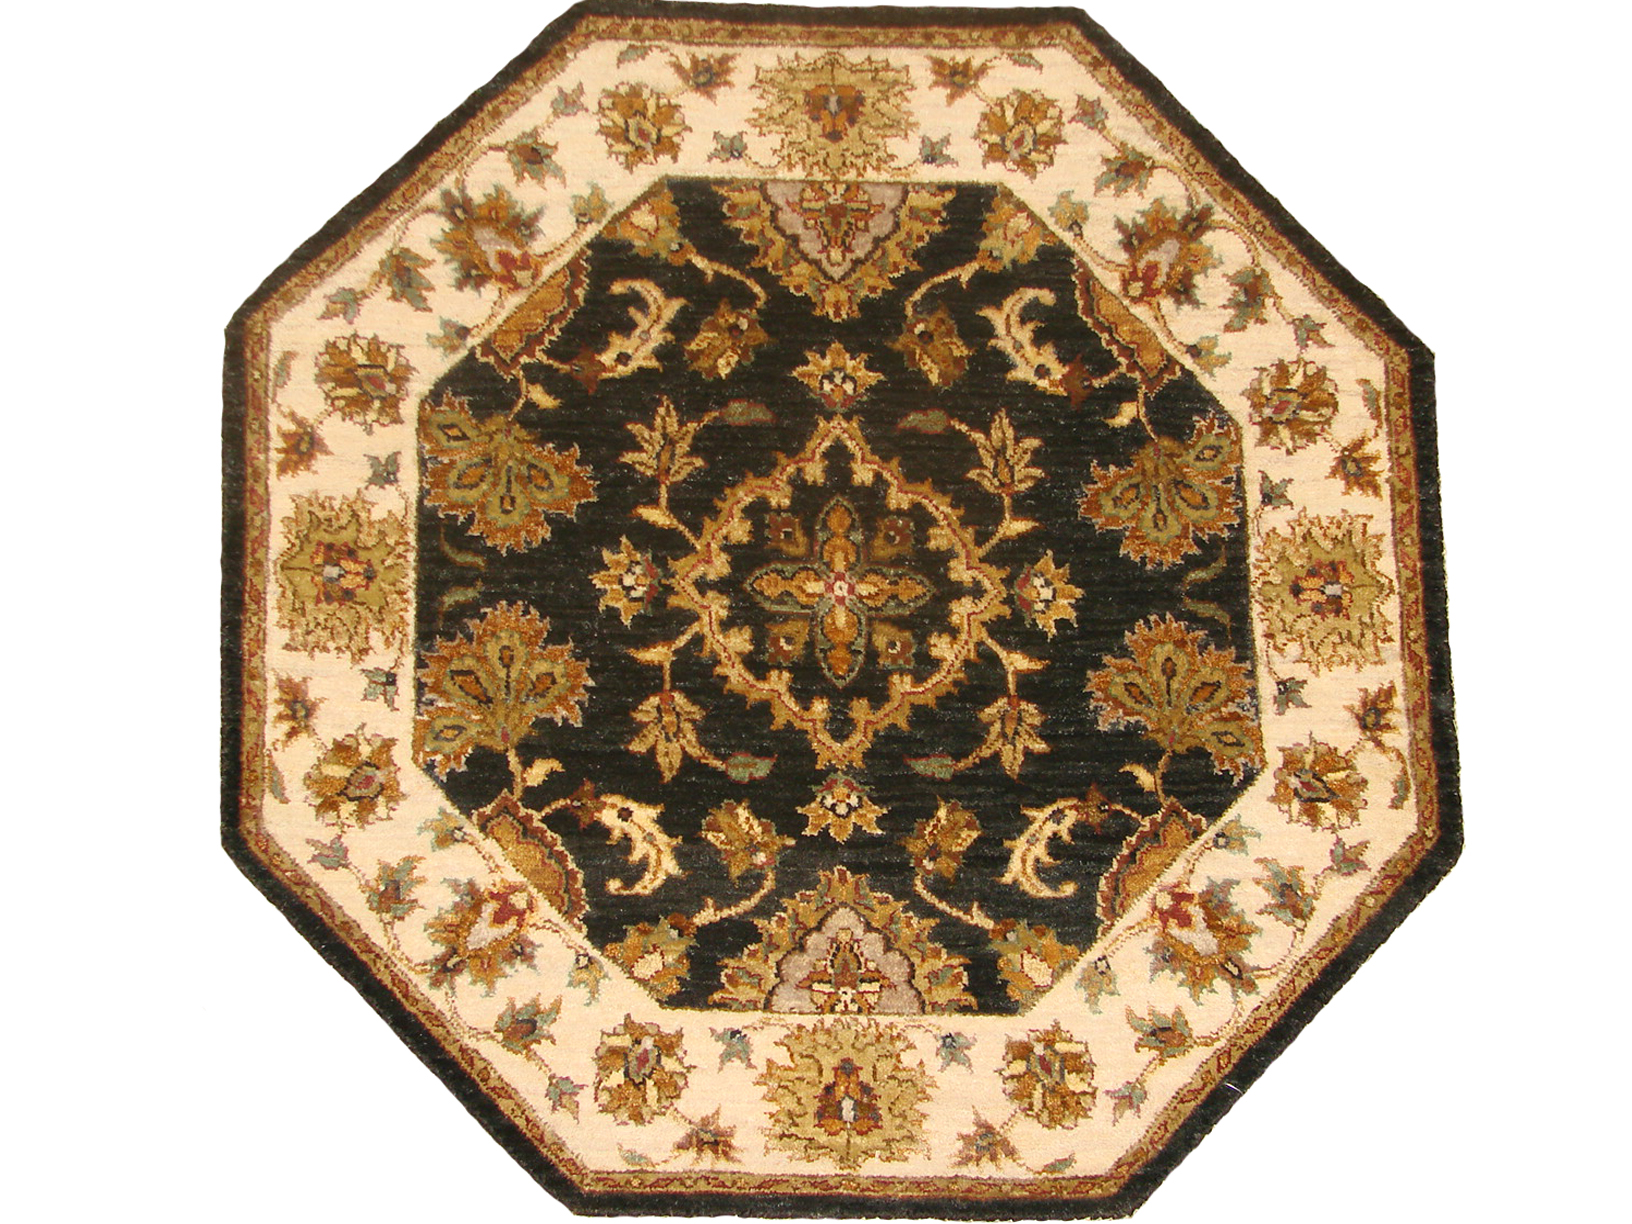 3 ft. Round & Square Traditional Hand Knotted Wool Area Rug - MR18730